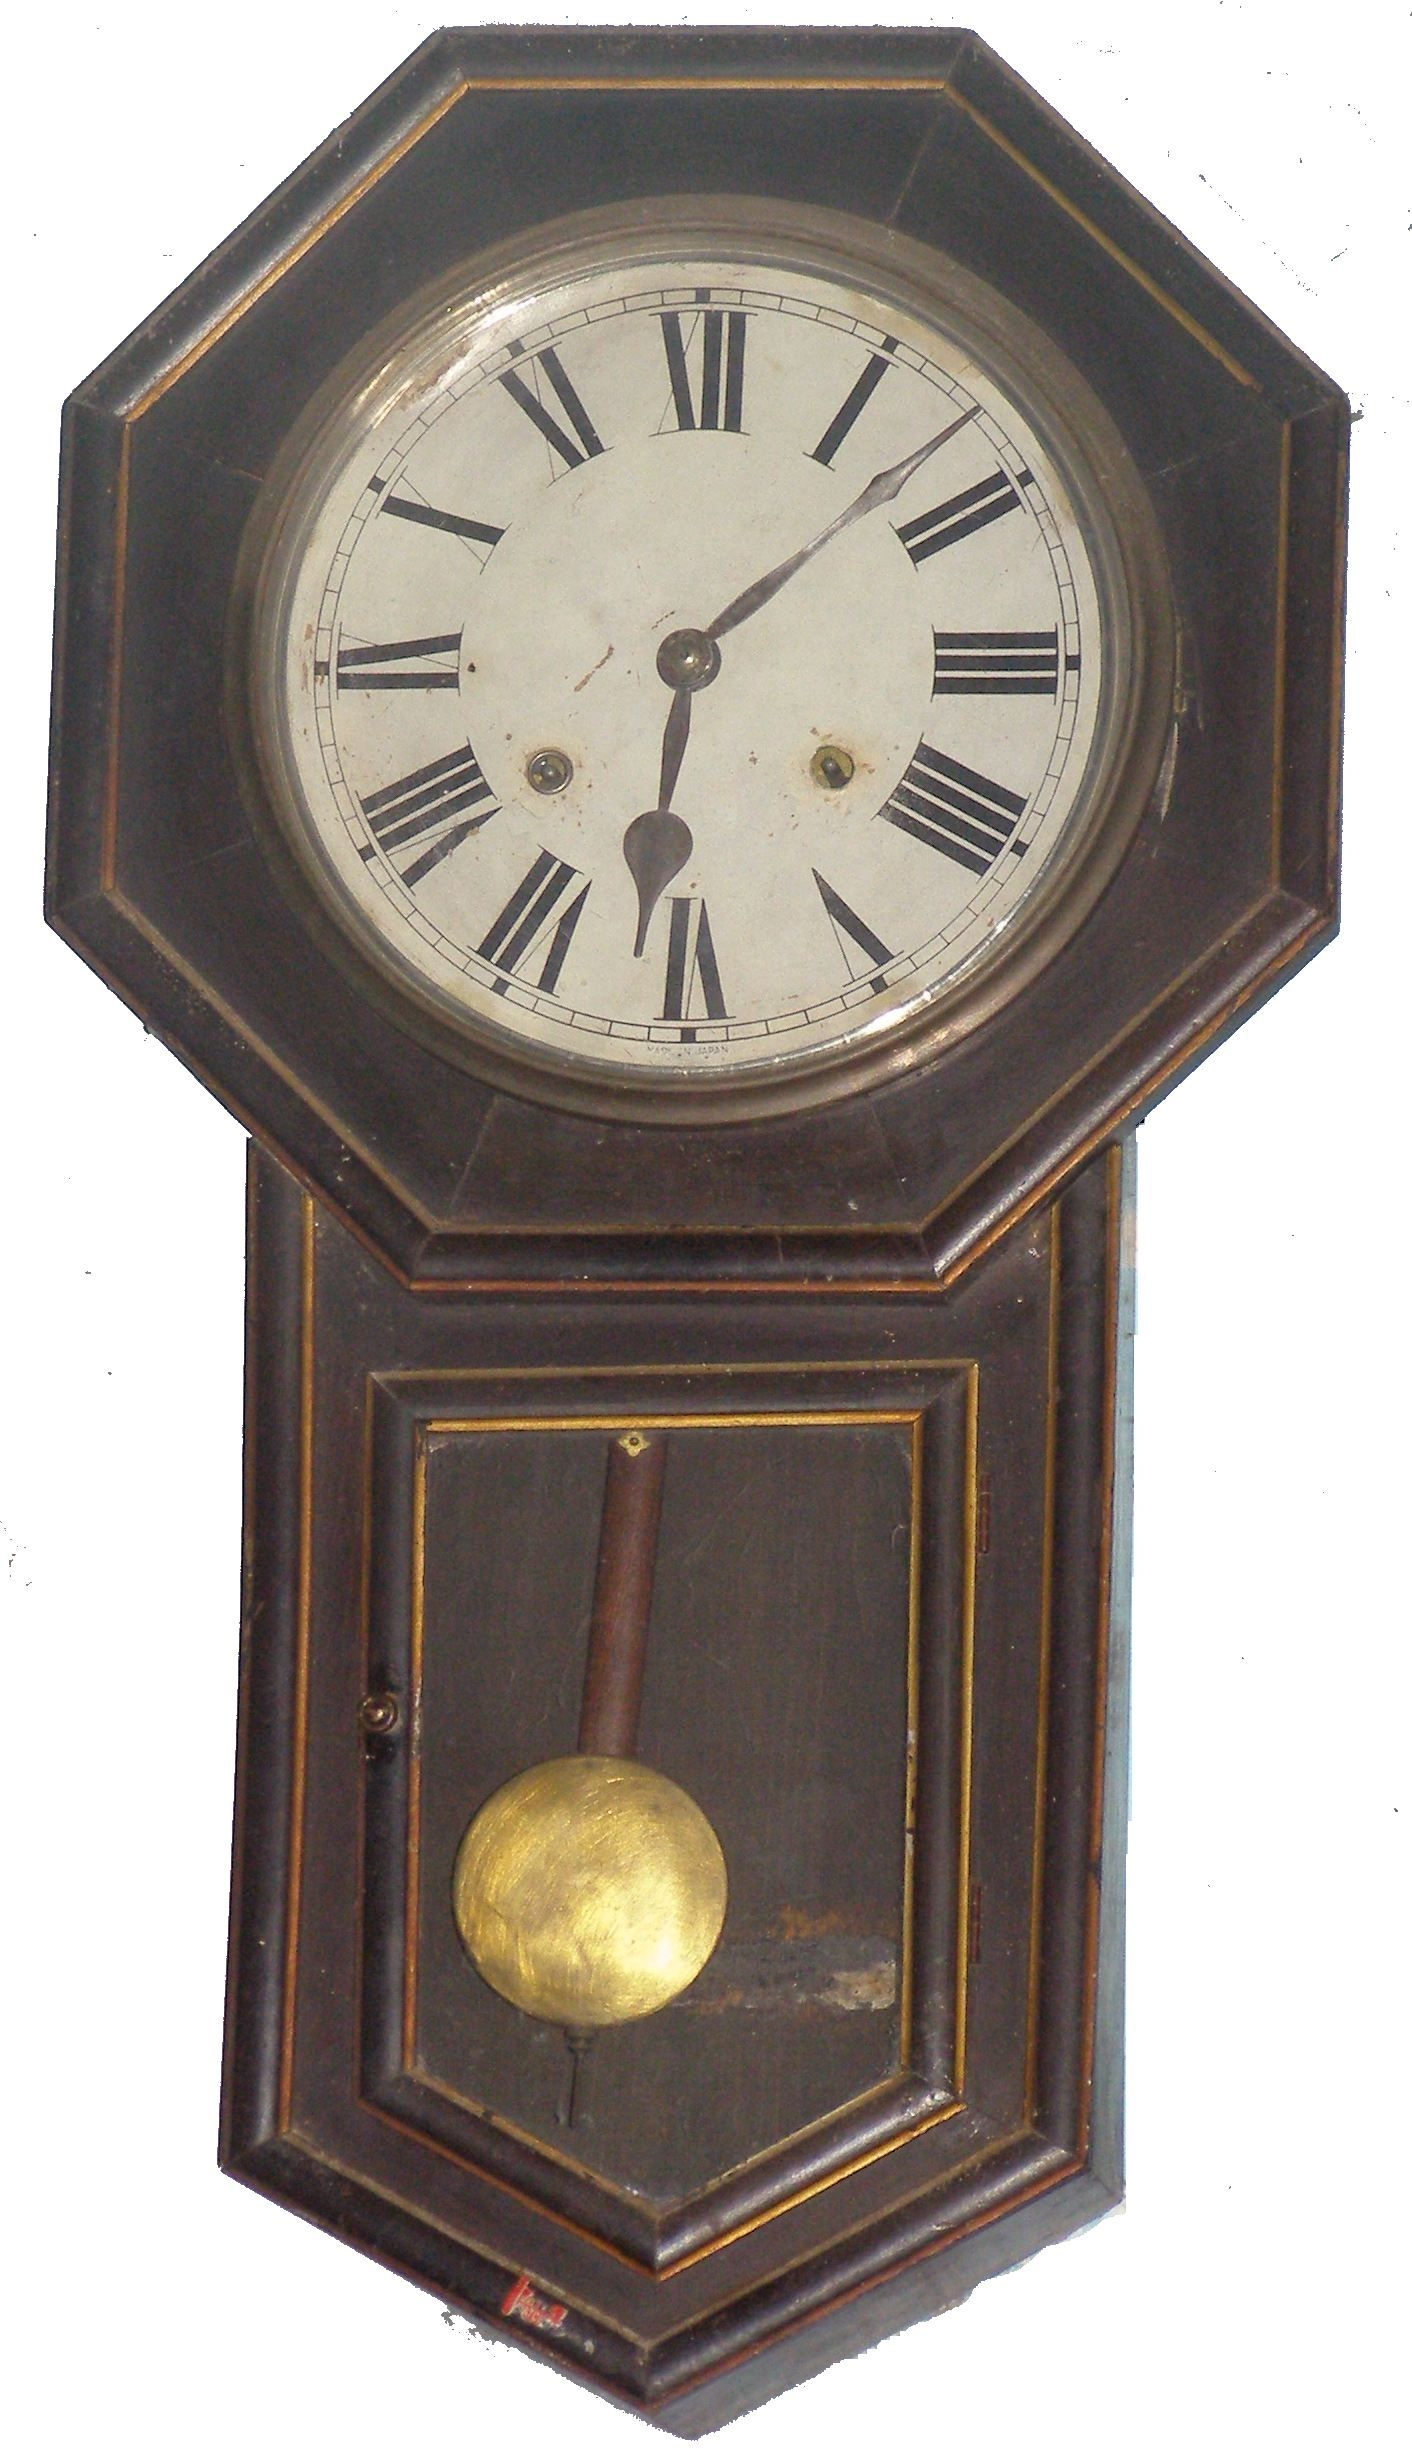 Different Types Of Antique Wall Clocks Antique Wall Clocks Wall Clock Clock